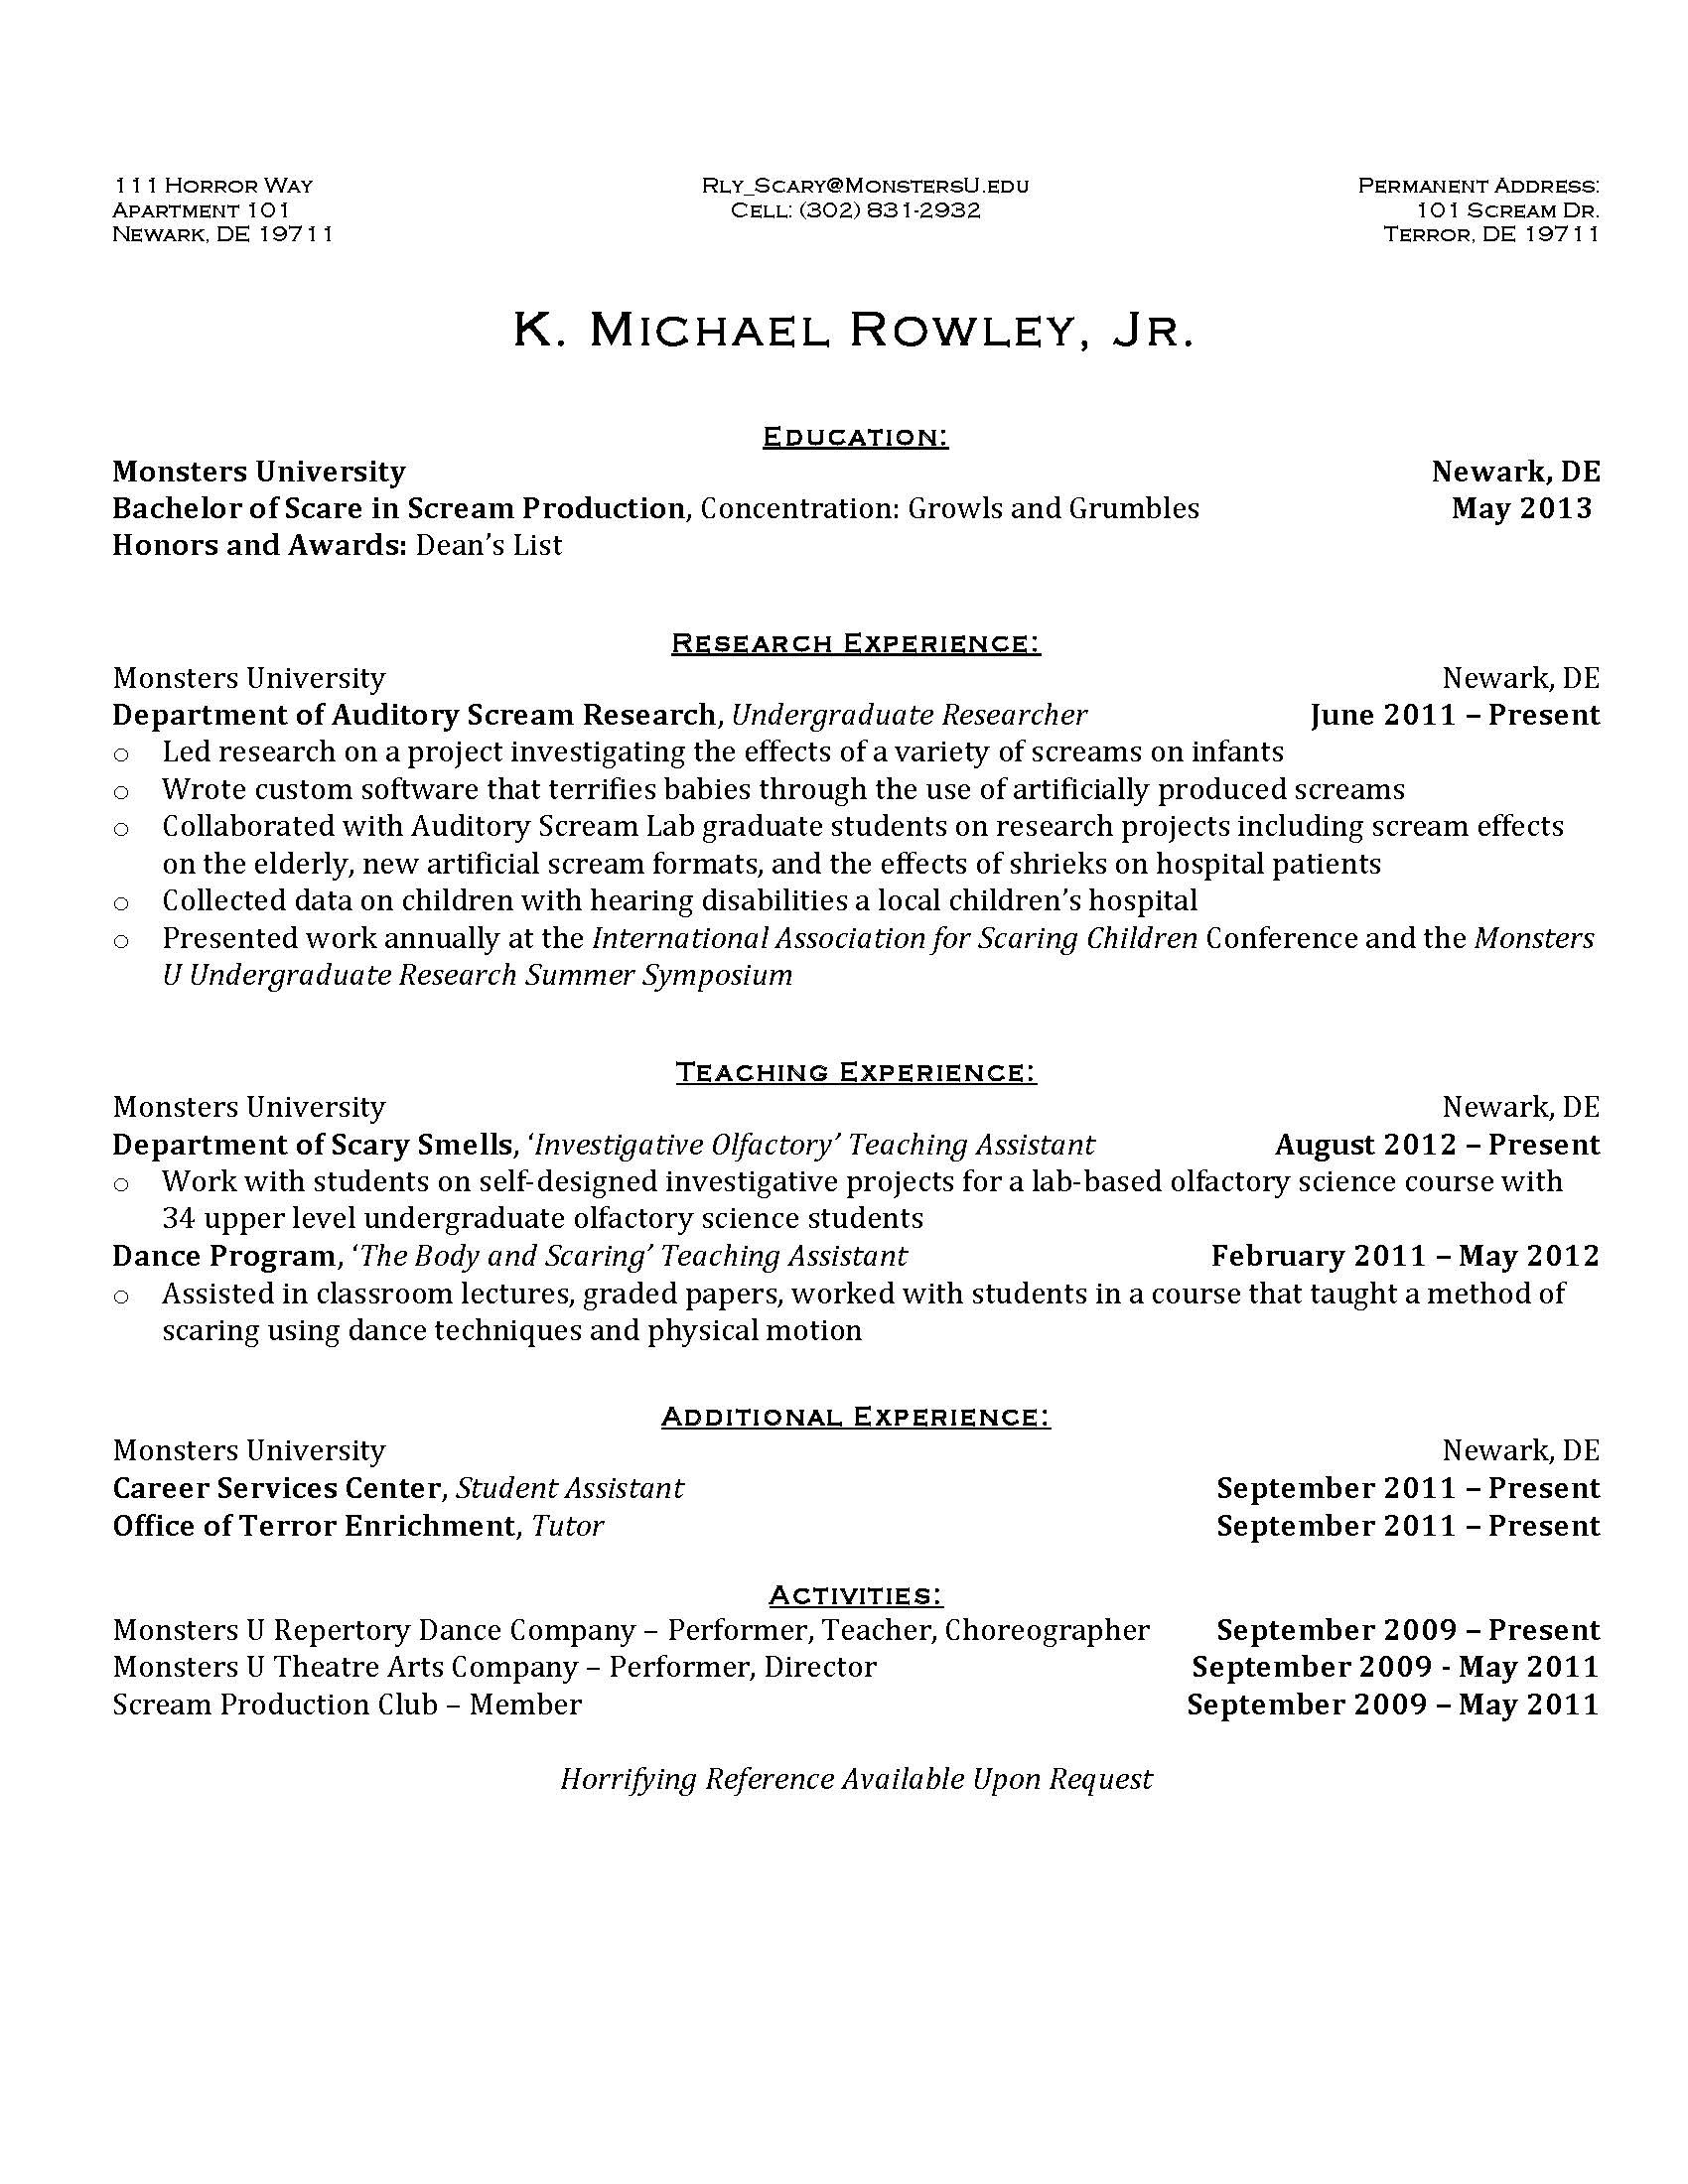 Resume Formats Monster Resume Examples And Writing Tips The Balance Wow Employers With Your Monster Resume The Ud Blog Squad